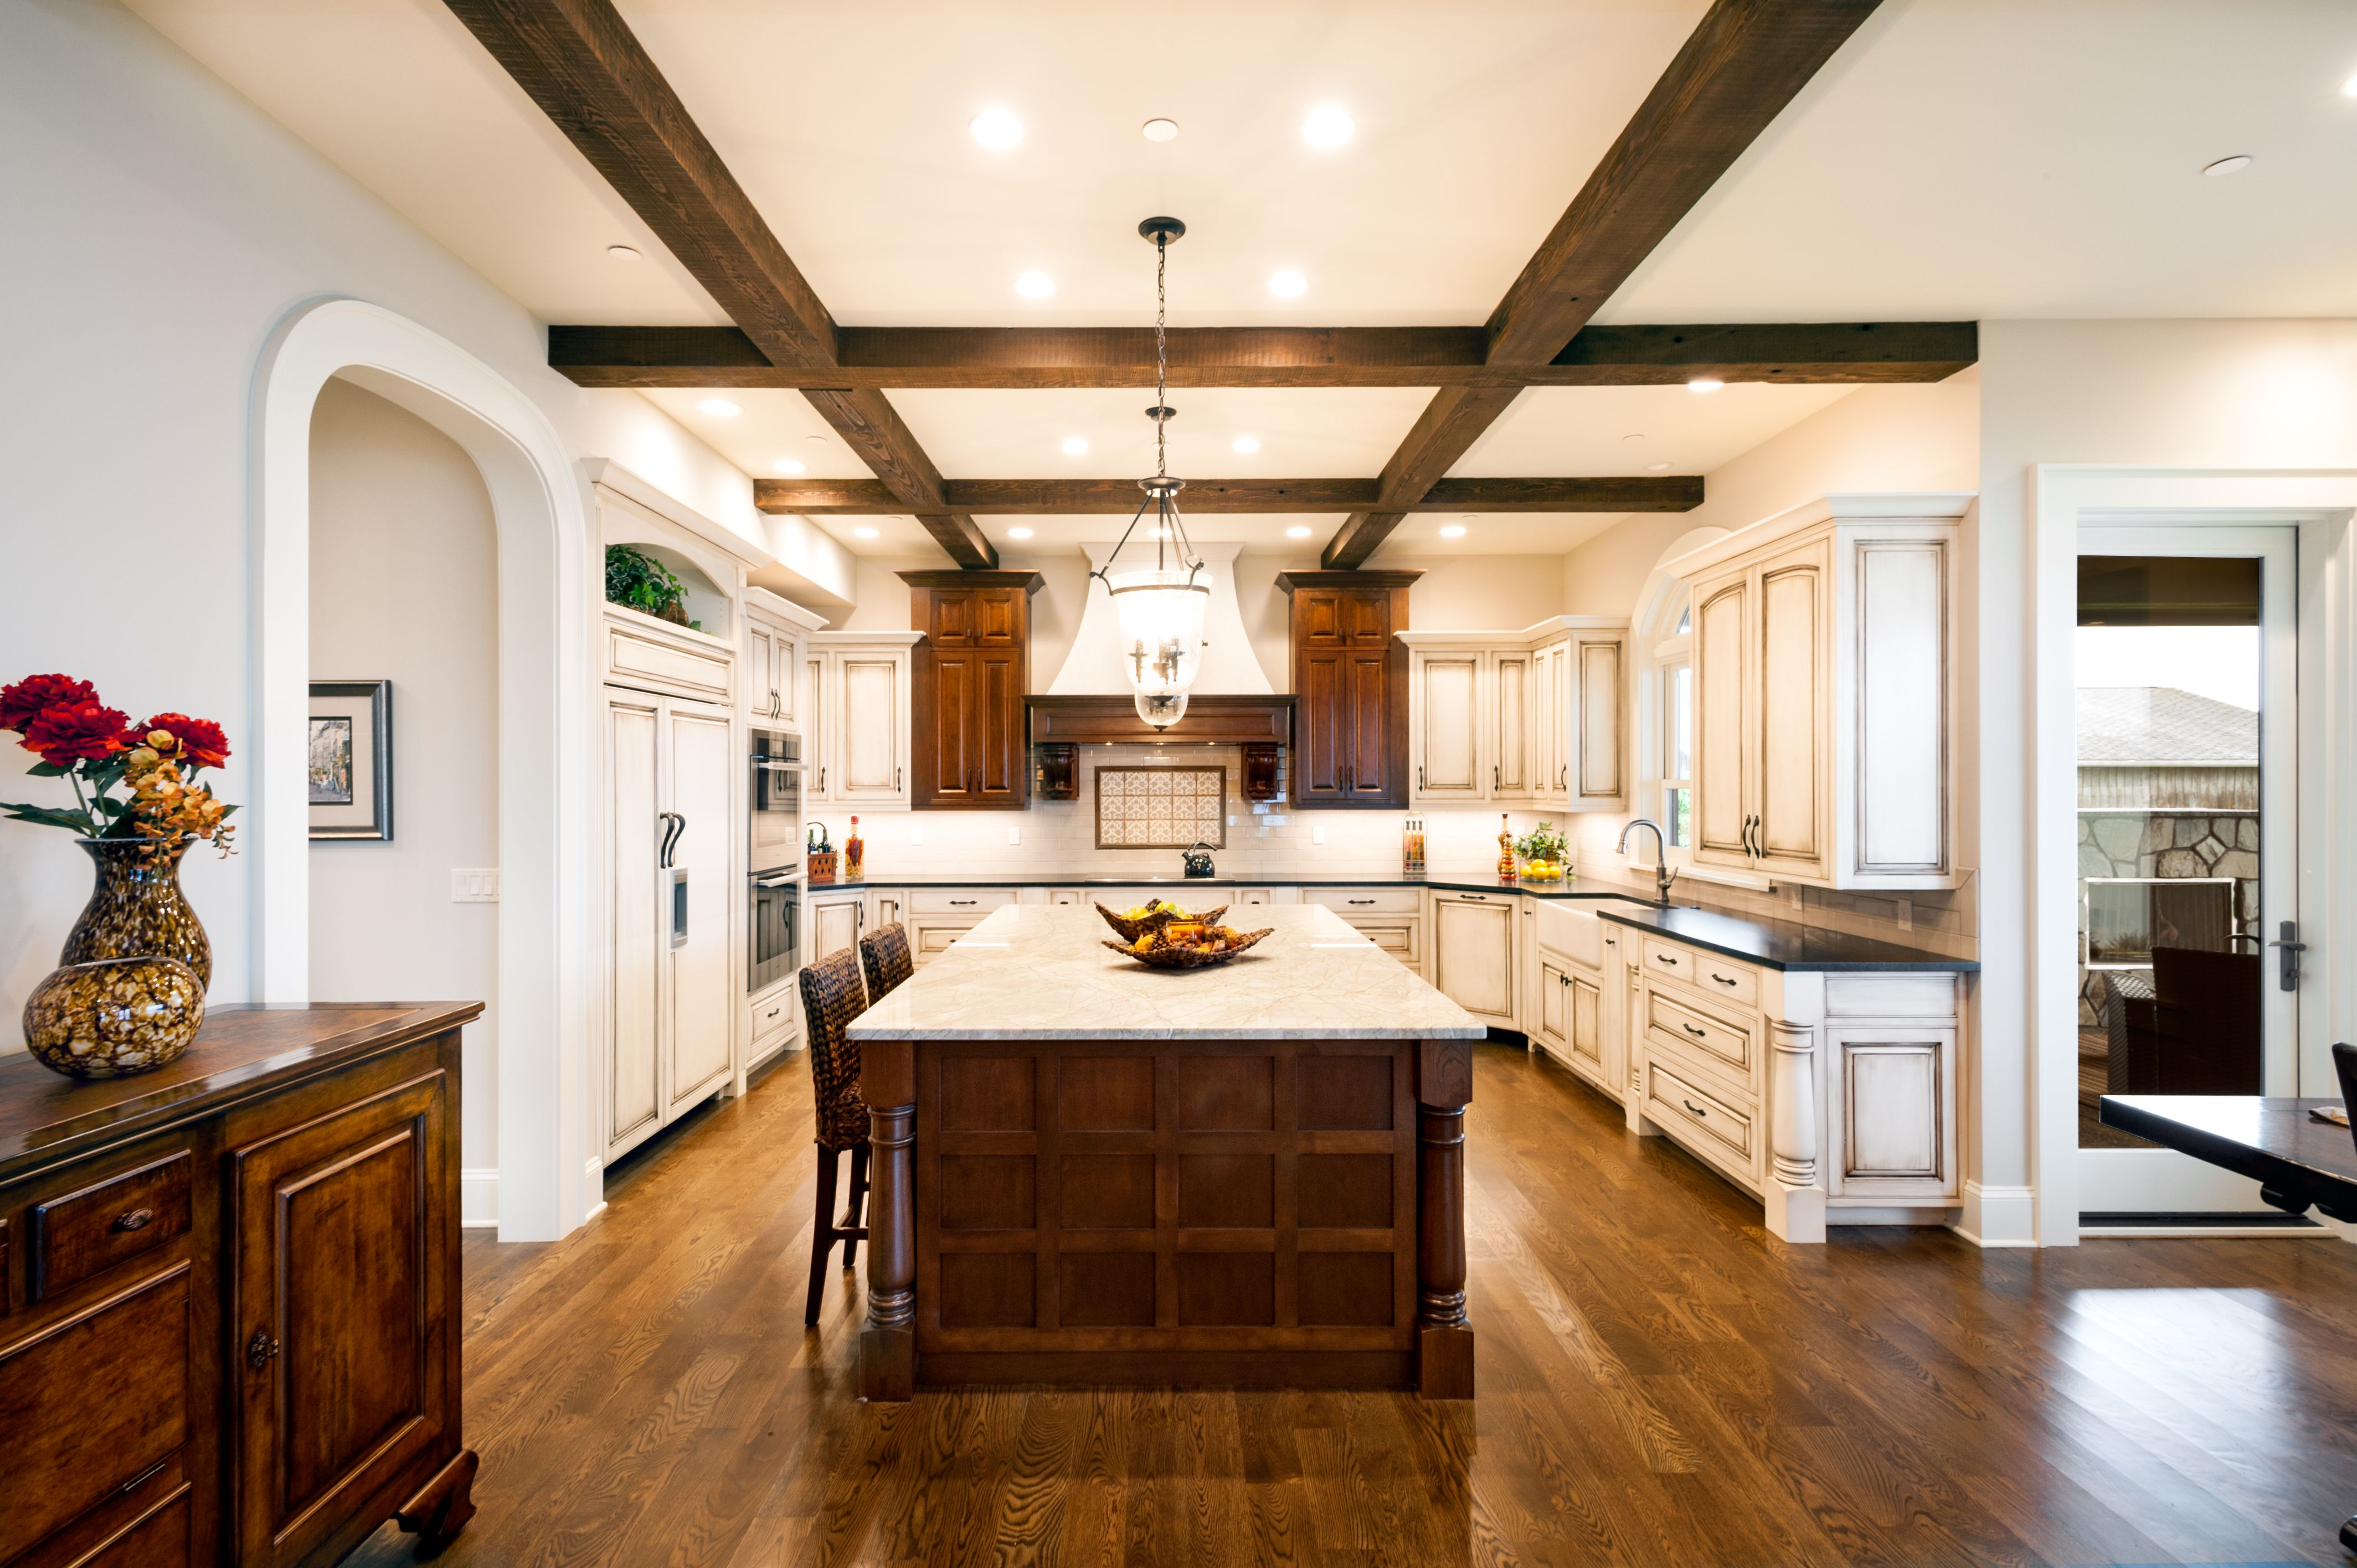 Kitchen With White And Dark Stained Custom Cabinets Exposed Reclaimed Beams White Oak Fl Kitchen Cabinetry Design Paint Cabinets White Painting Oak Cabinets